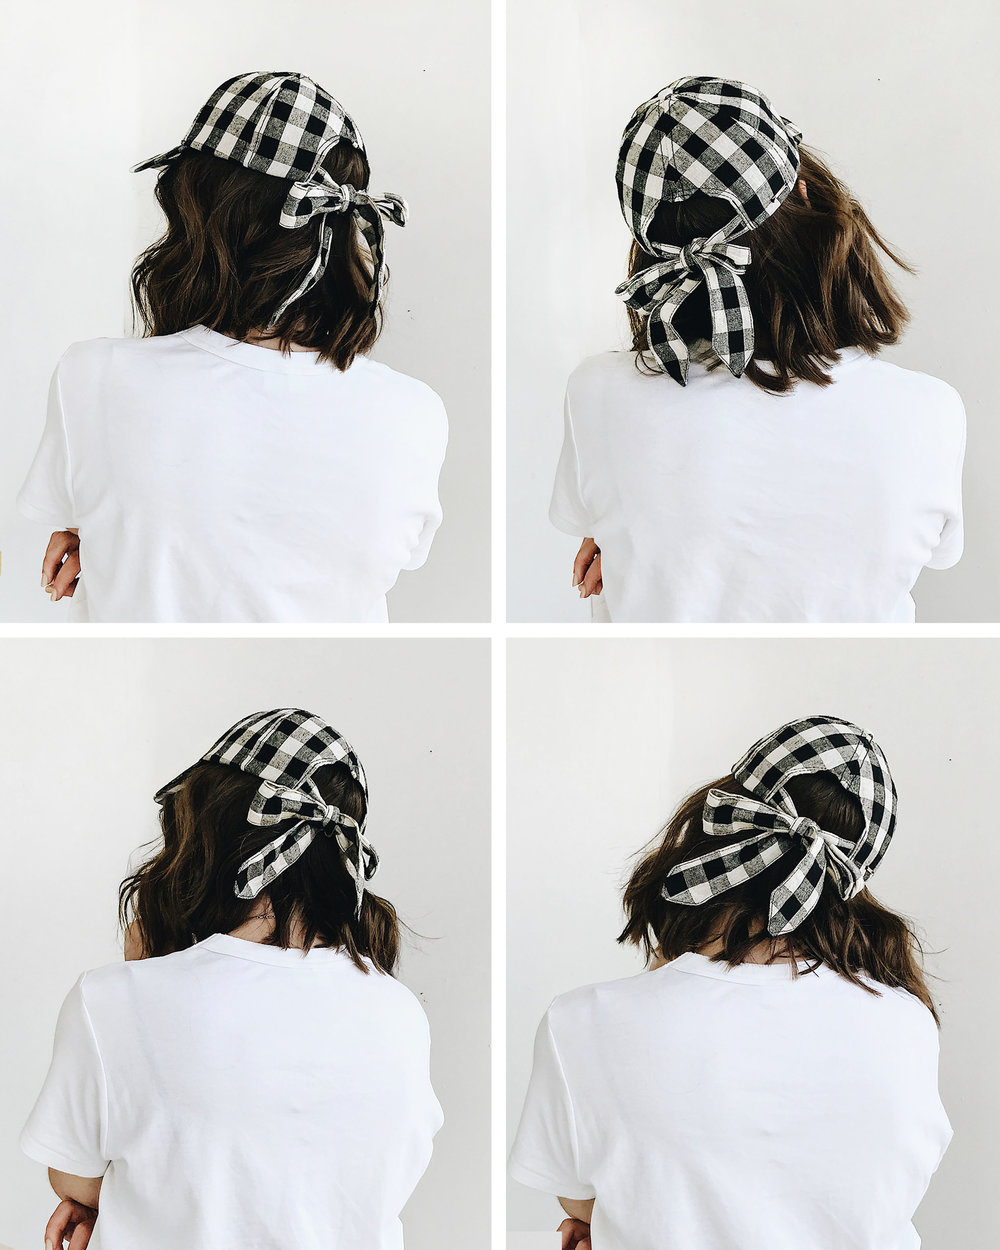 Multi_gingham Cap-2.JPG